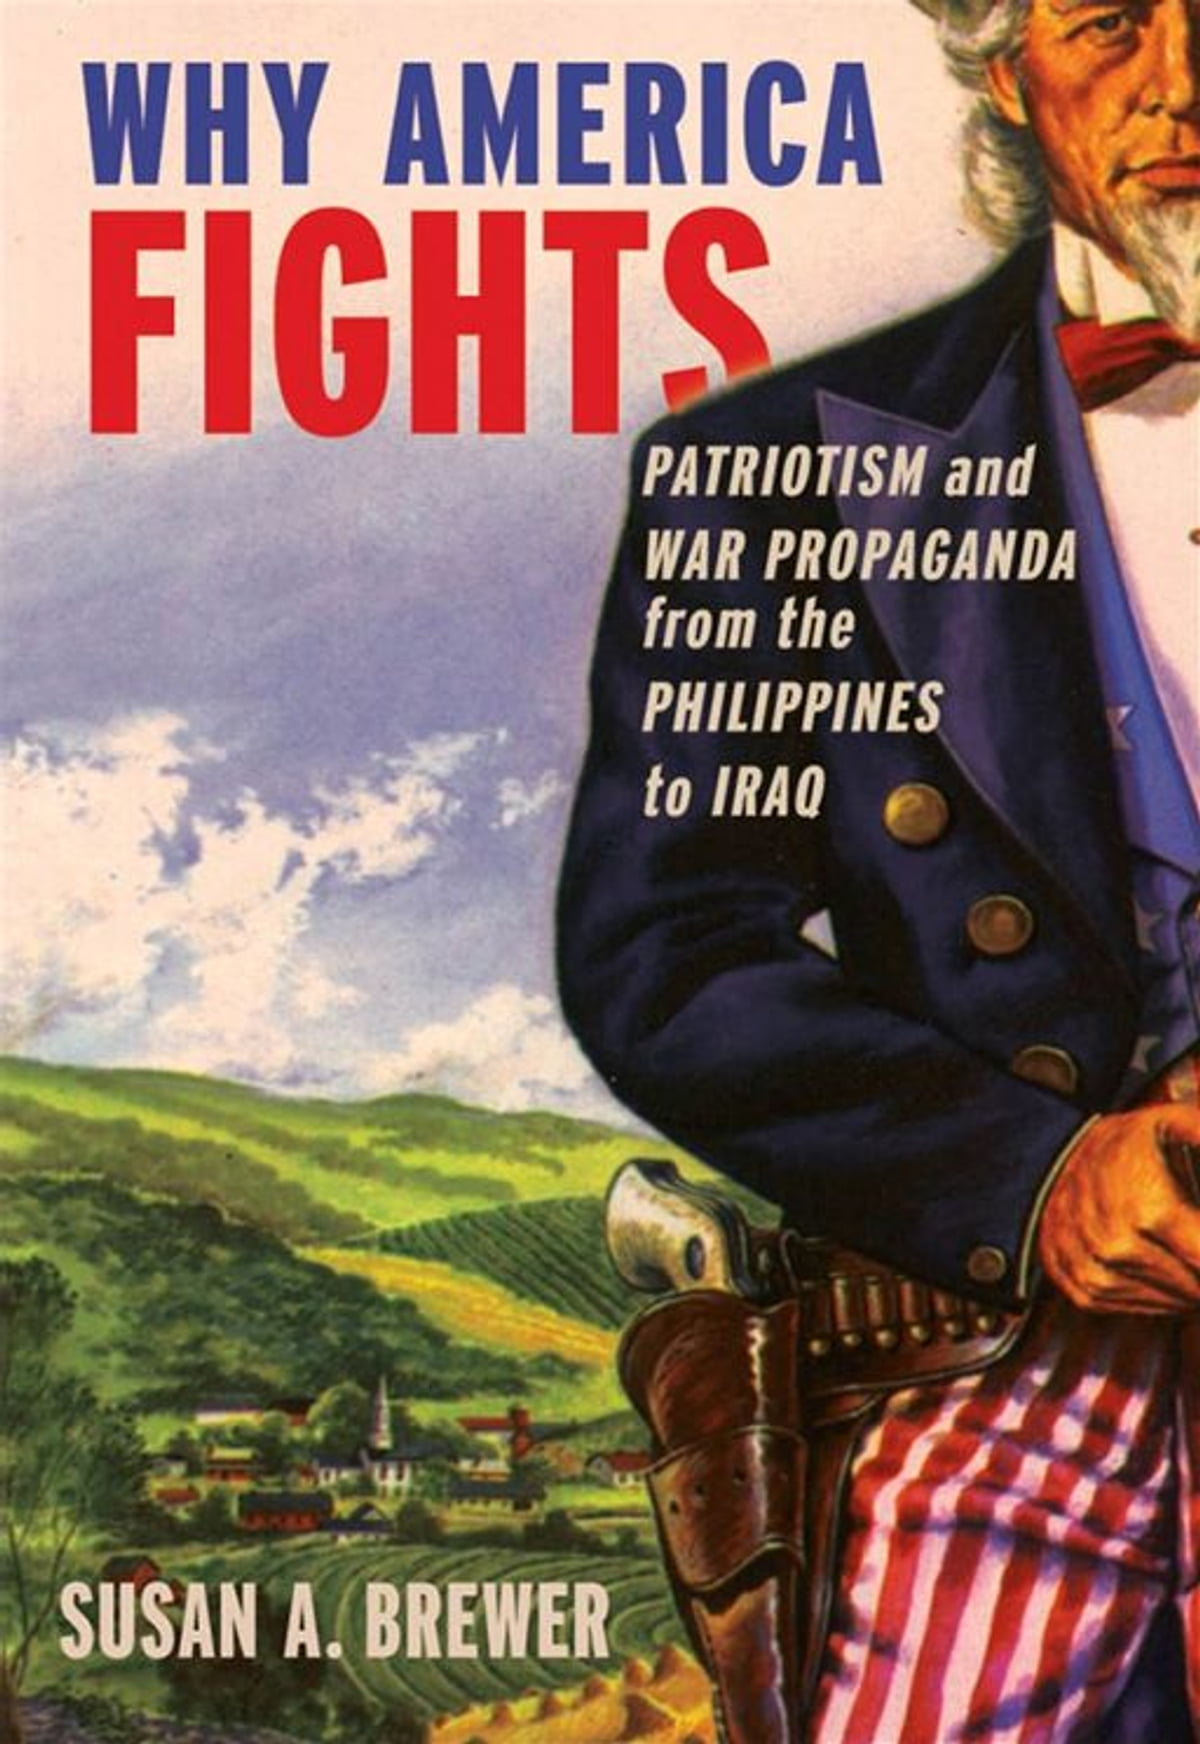 Why America Fights : Patriotism And War Propaganda From The Philippines To Iraq eBook by Susan A. Brewer - 9780195381351 | Rakuten Kobo